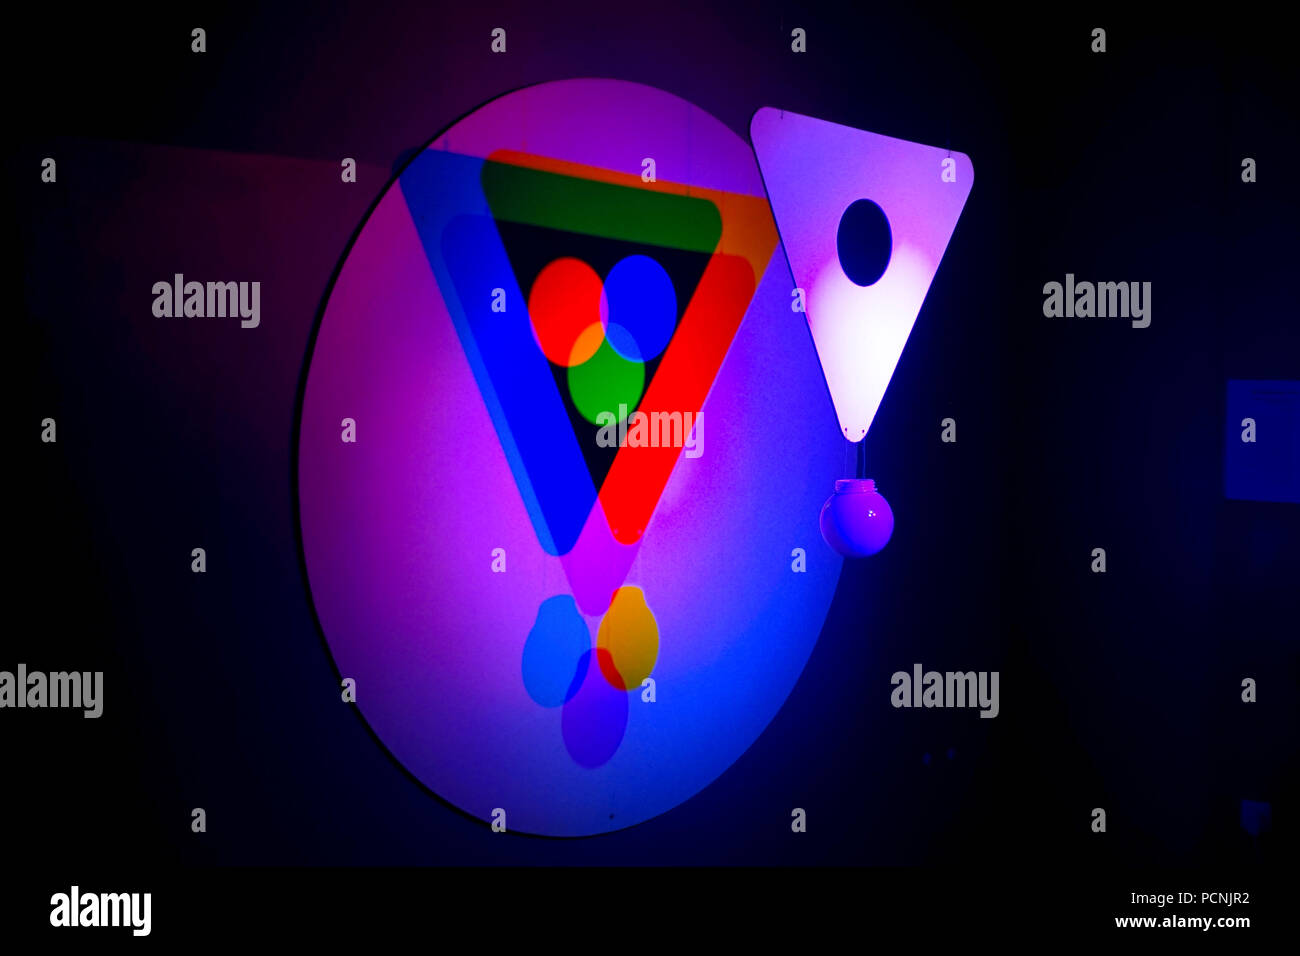 Venn diagram form by projected coloured lights - Stock Image